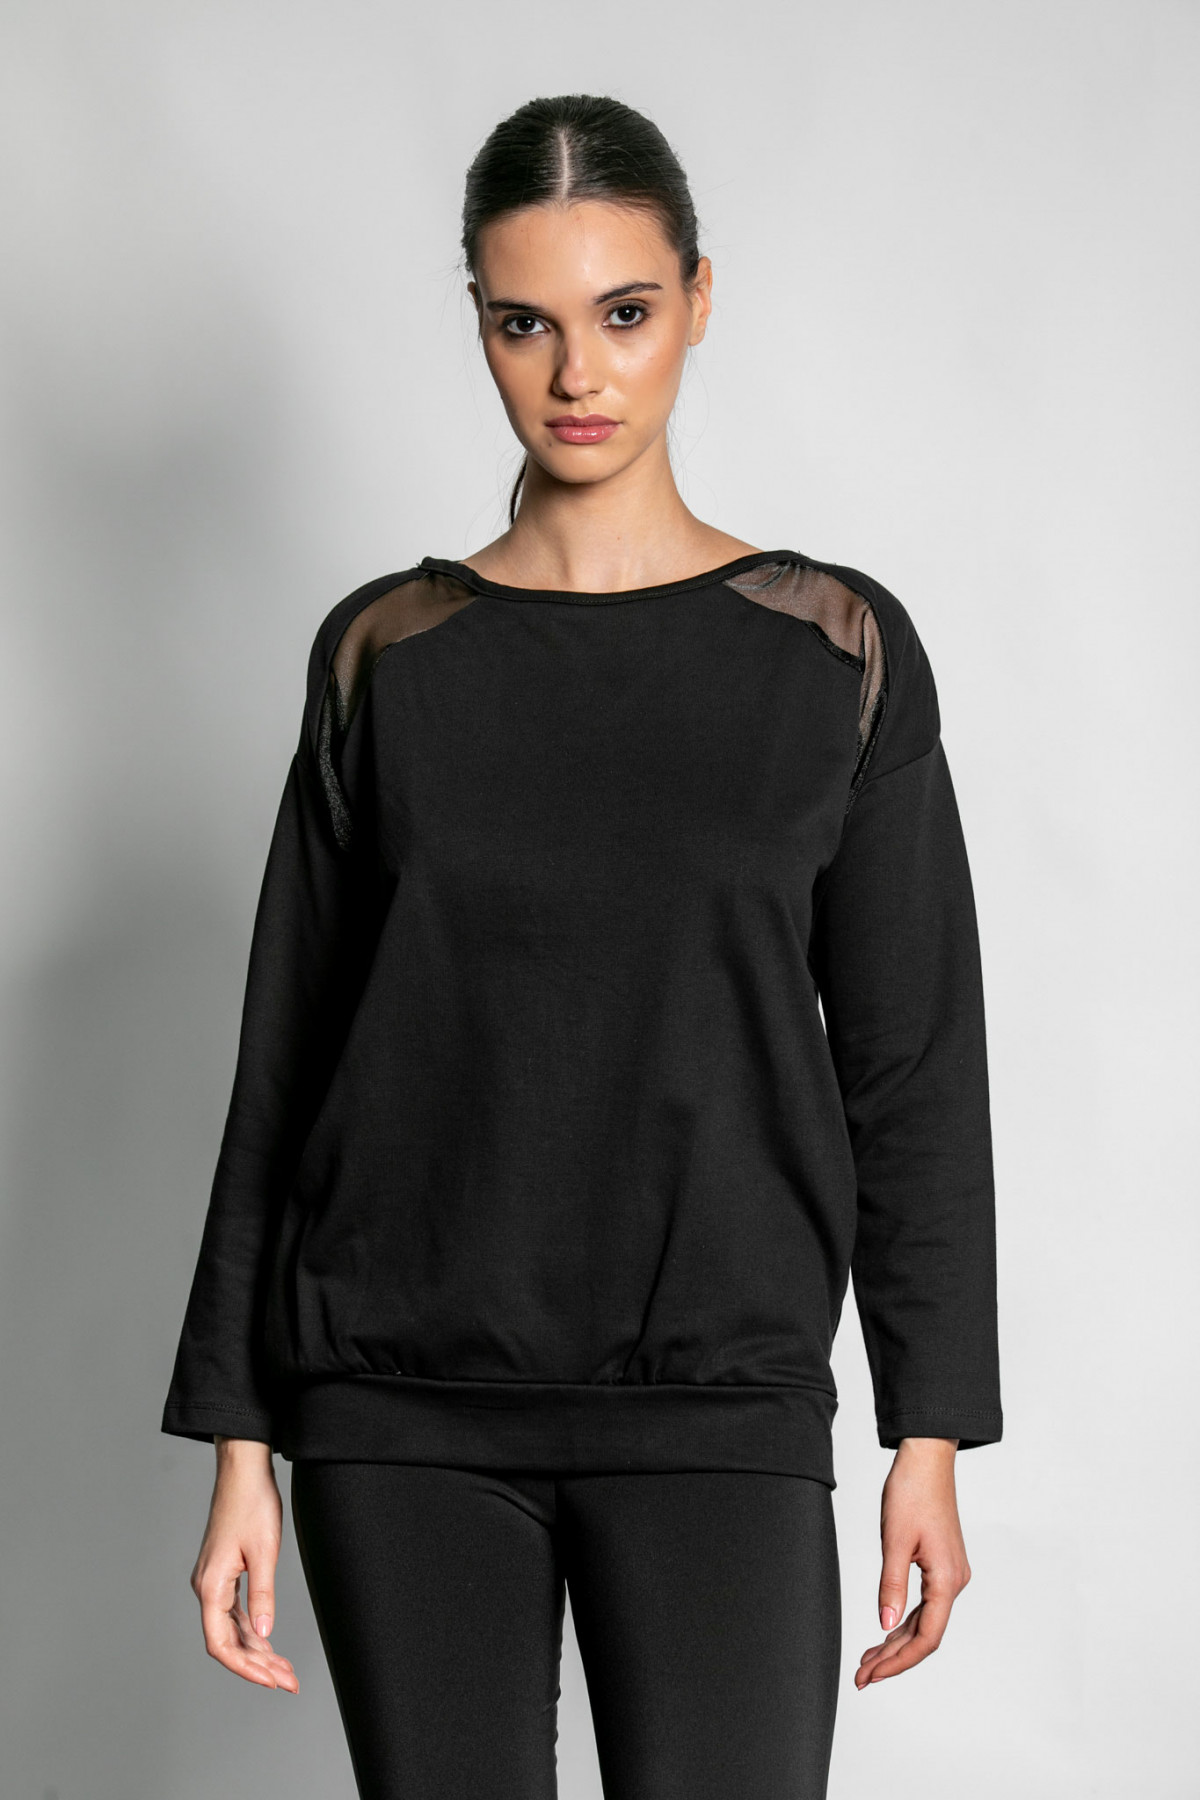 SWEATSHIRT WITH SHEER BACK